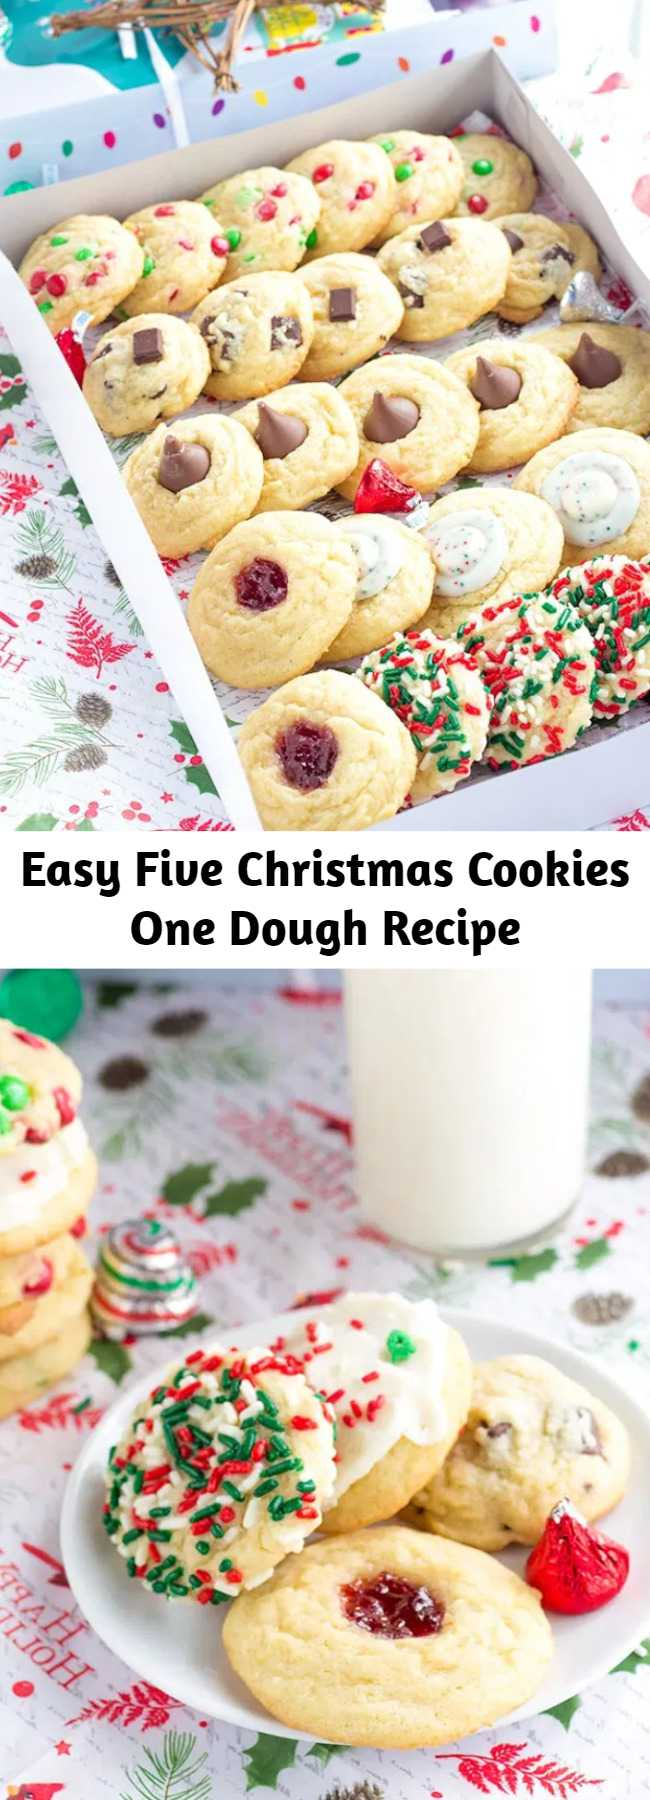 Easy Five Christmas Cookies One Dough Recipe - Use one dough to make an entire Christmas cookie box for gifts. Add chocolate chips, m&m's, kisses, jam, or roll them in sprinkles! #christmascookies #christmas #christmasrecipes